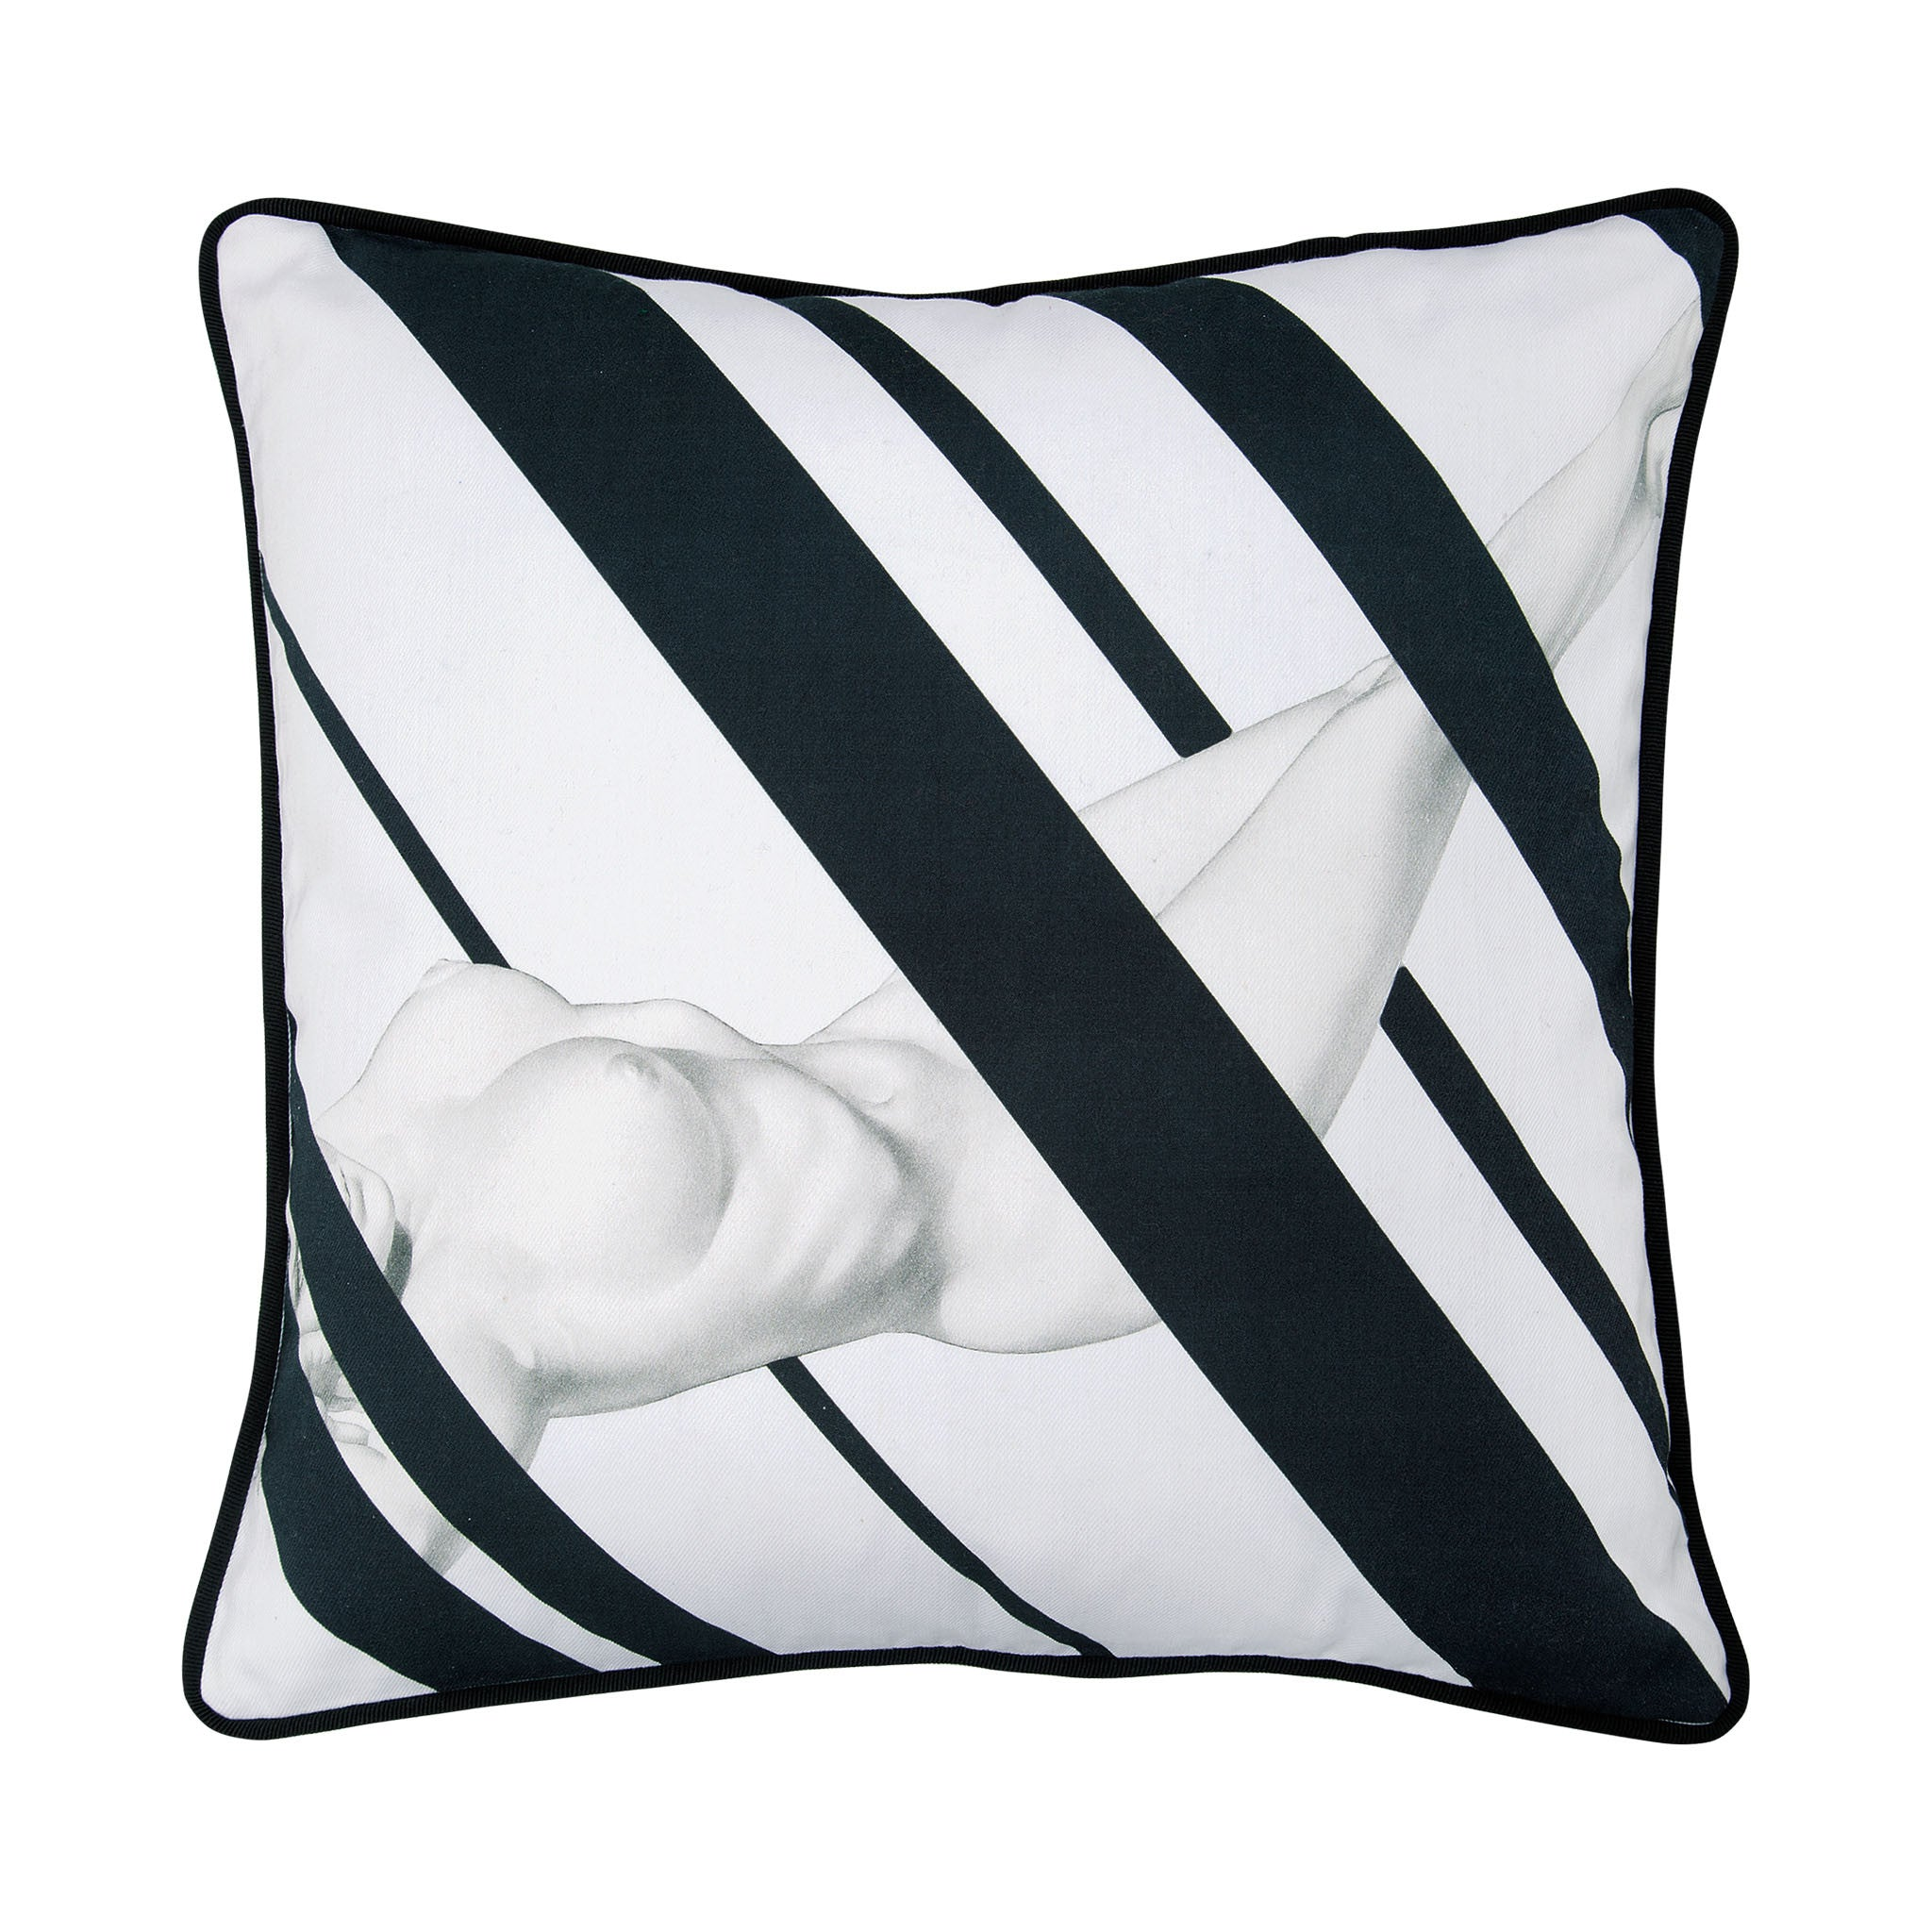 Cotton black & white reclining nude print cushion - Bivain - 1